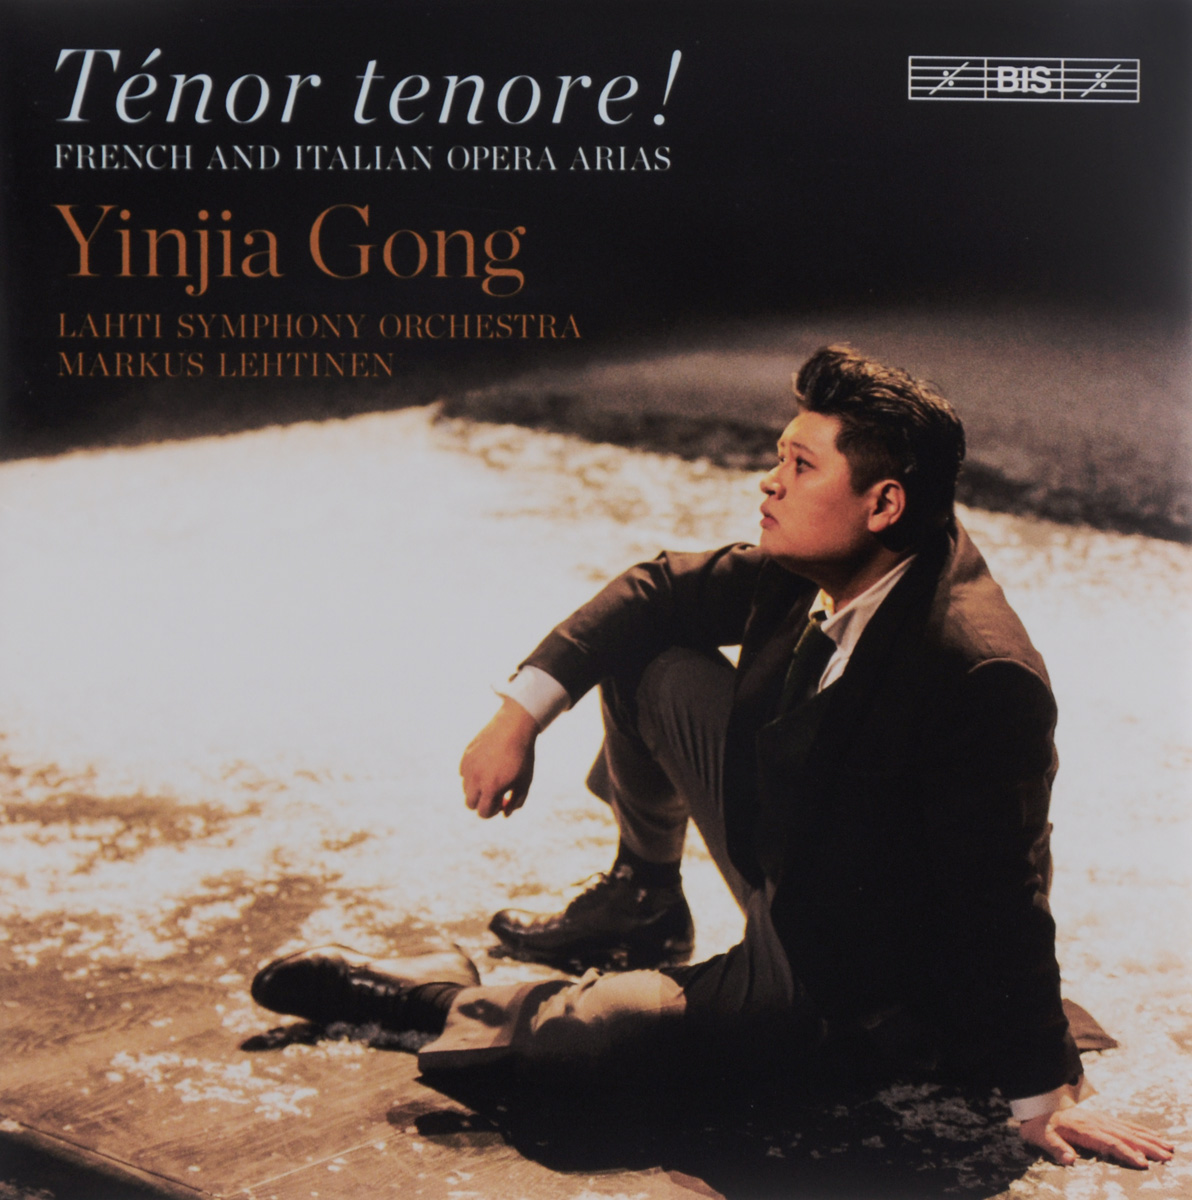 Yinjia Gong,Markus Lehtinen,Lahti Symphony Orchestra Yinjia Gong. Tenor Tenore! French And Italian Arias (SACD) nabin amatya paul c knox and gong qiyong saccade eye movement